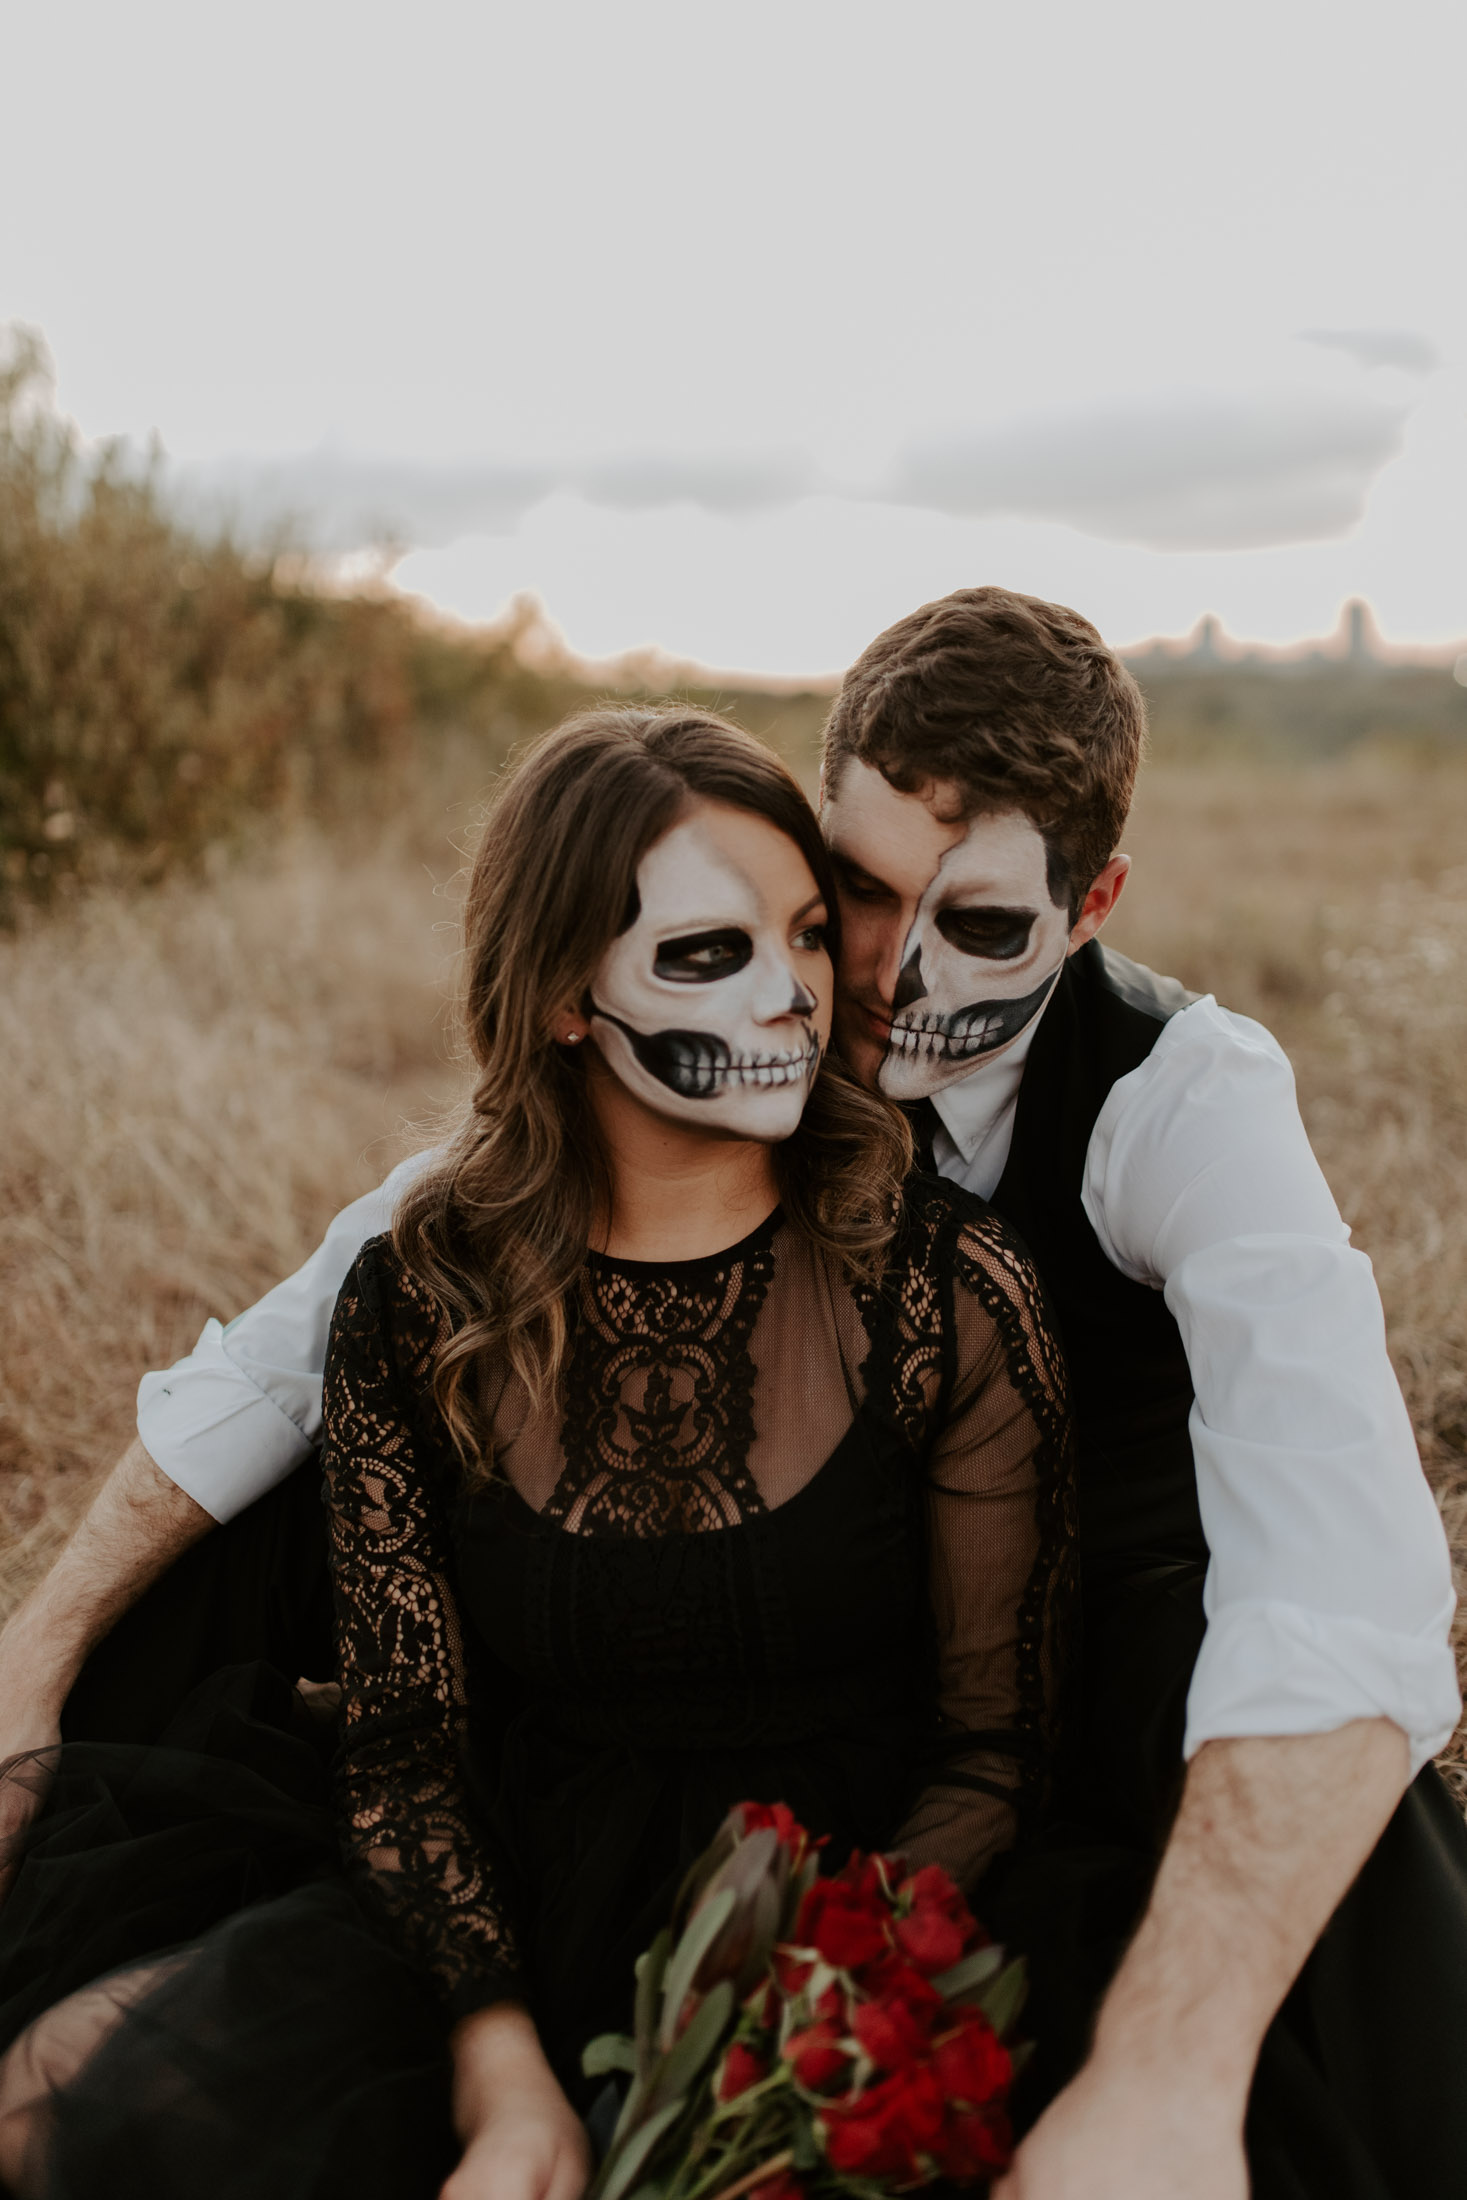 coy and girl with skeleton makeup on sitting close during a spooky photo session